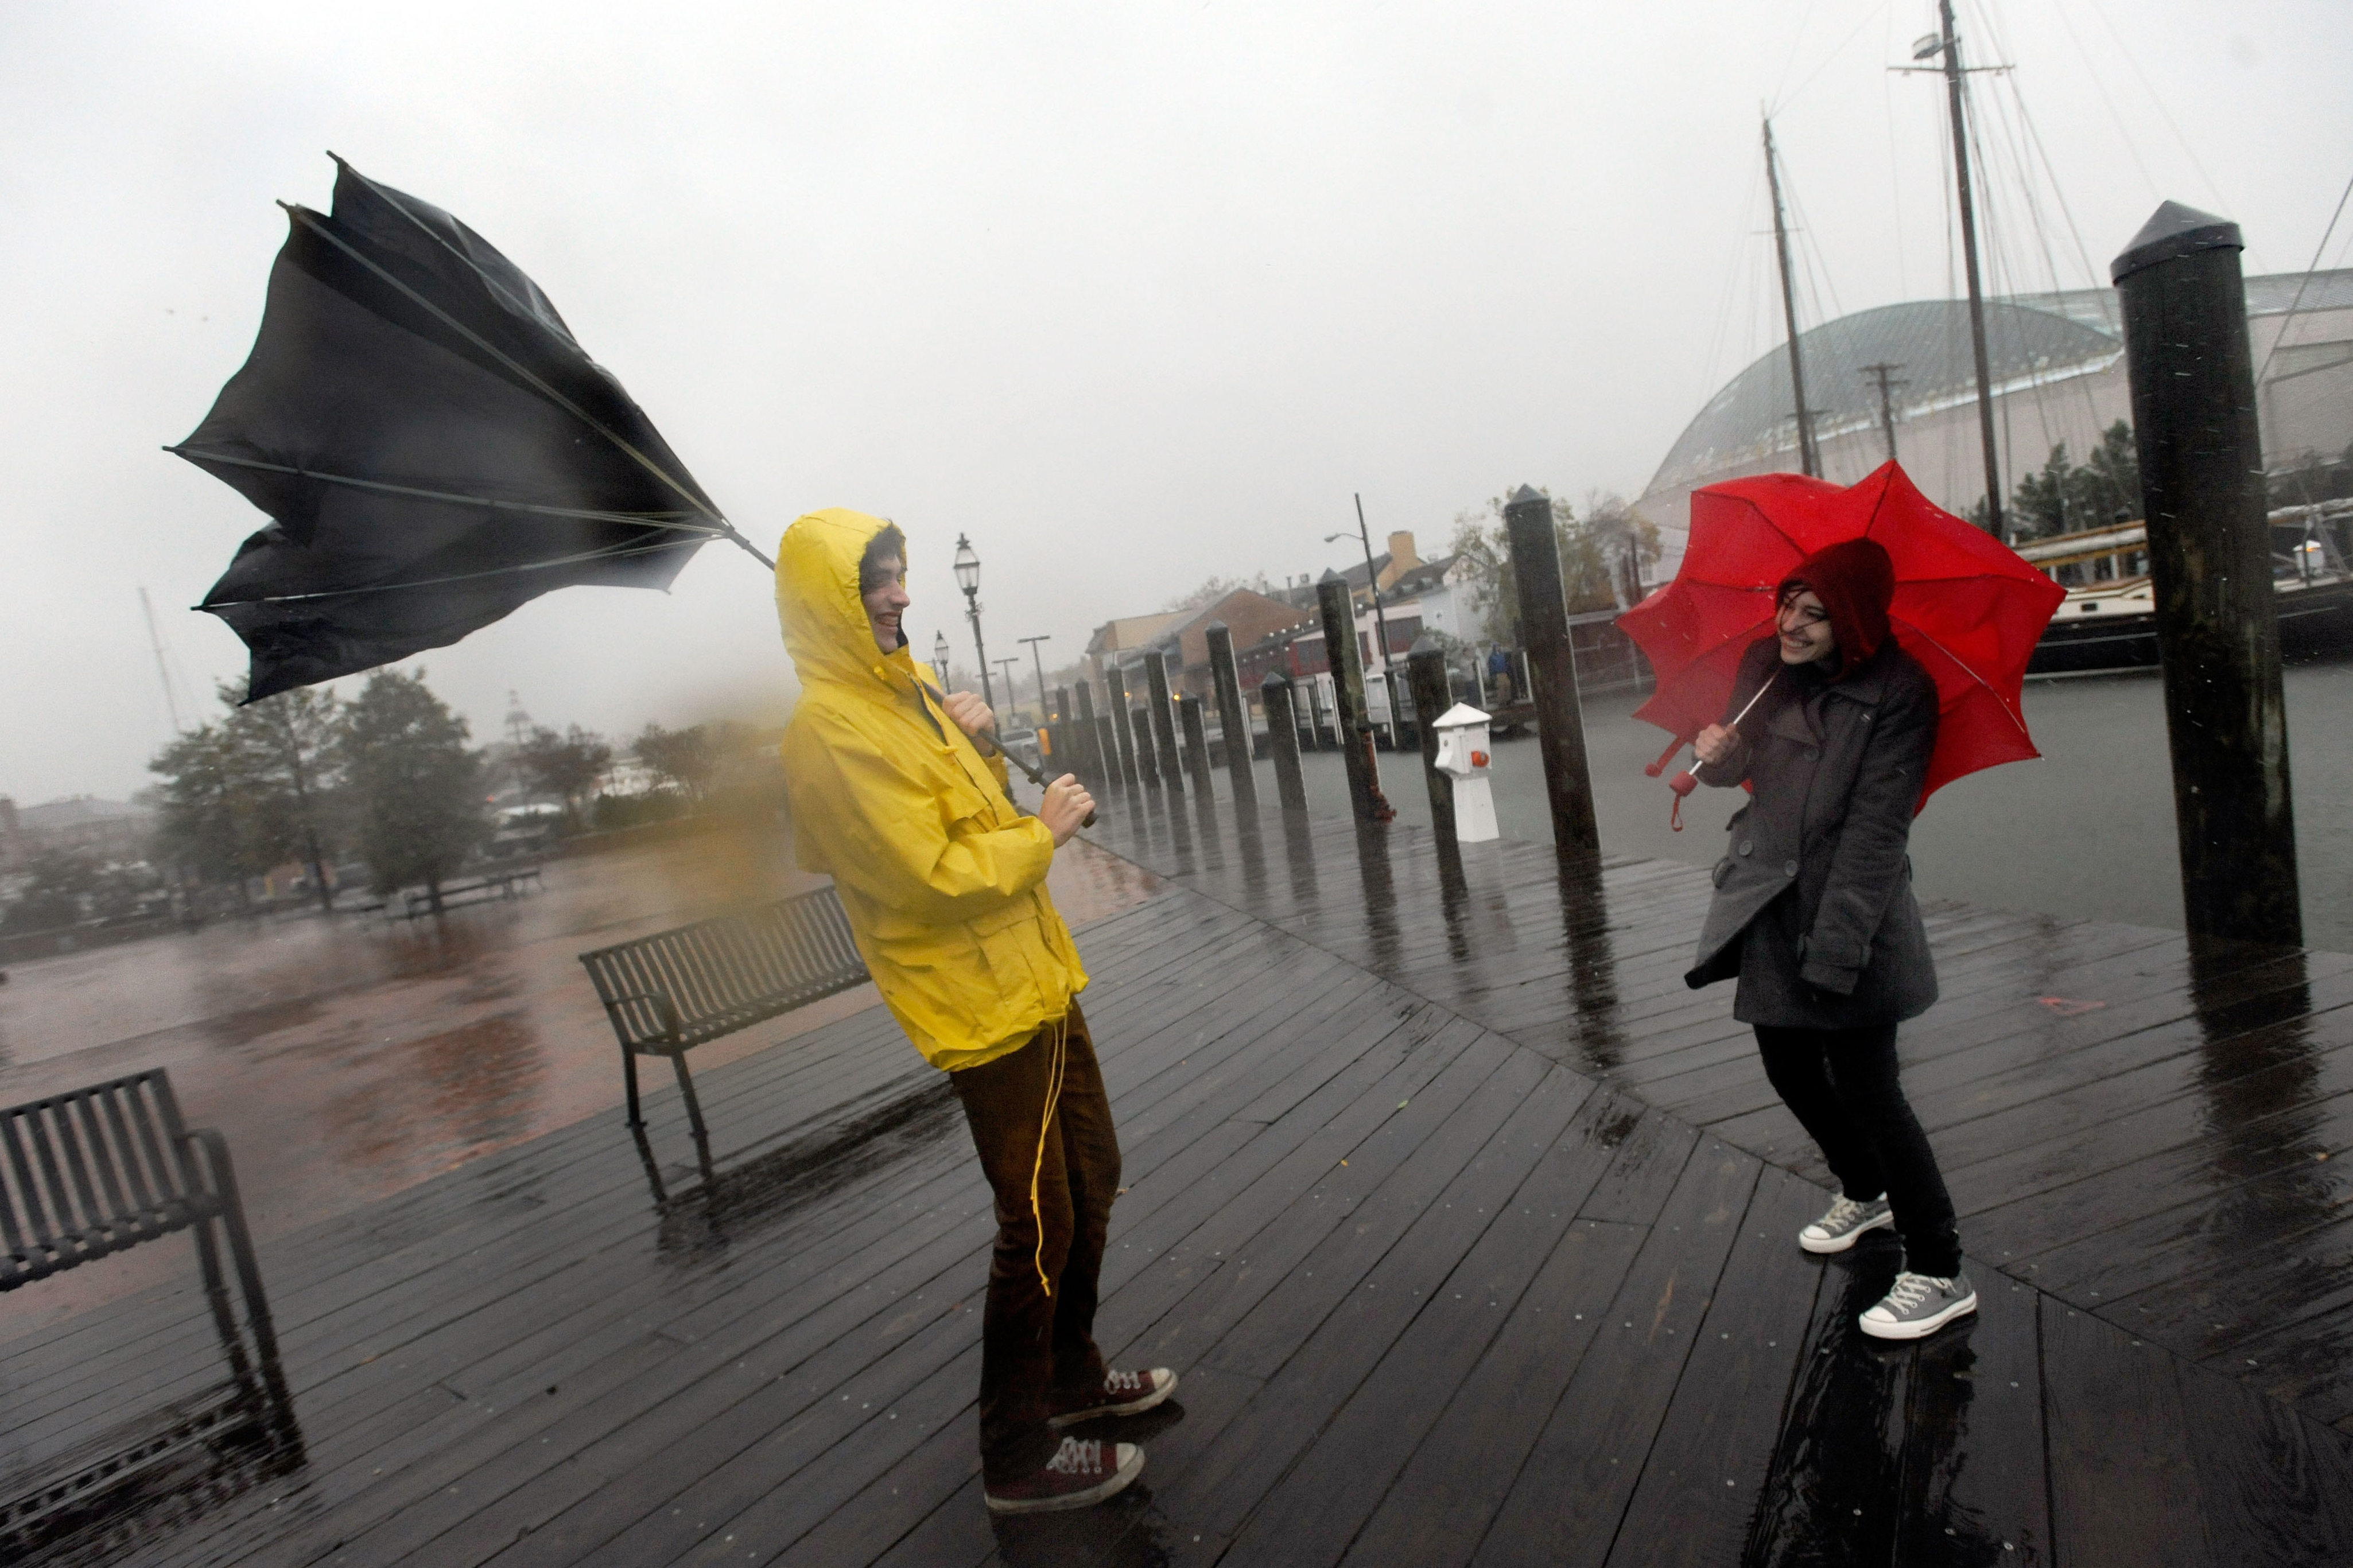 Jake Wilkerson (left) and Kaityln Baker struggle with their umbrellas as Hurricane Sandy approaches Annapolis, Md.